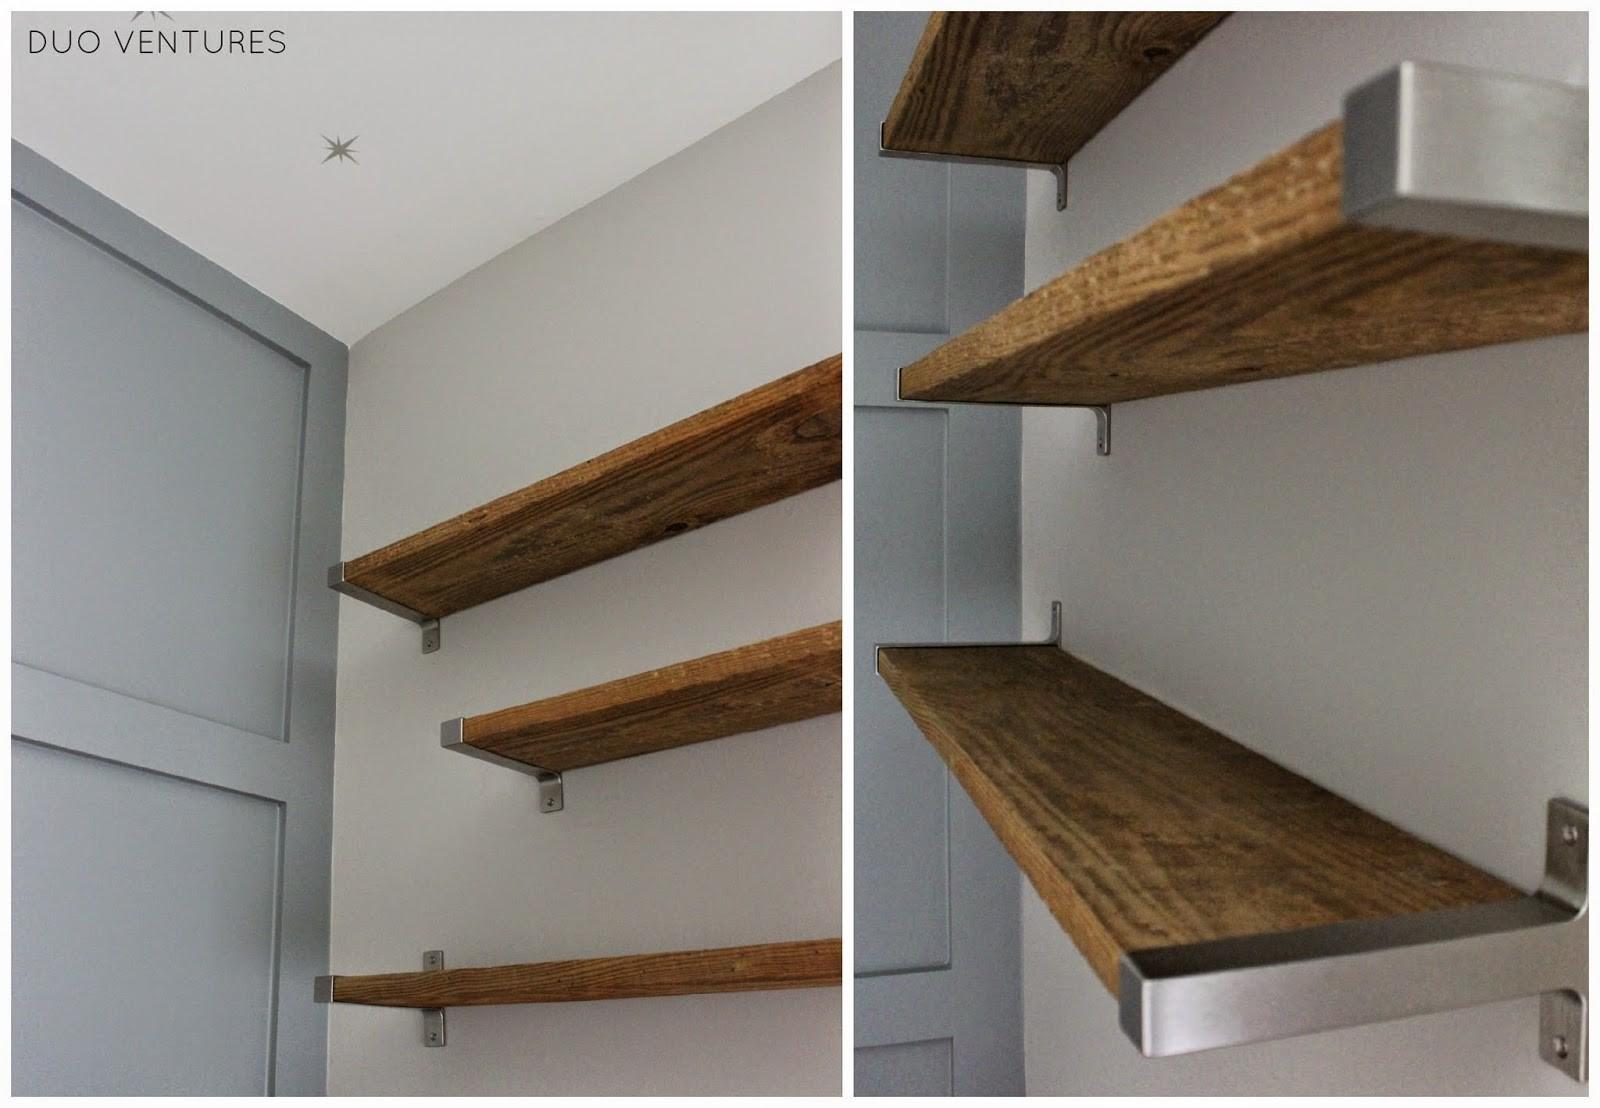 Duo Ventures Nursery Diy Reclaimed Barnwood Shelves